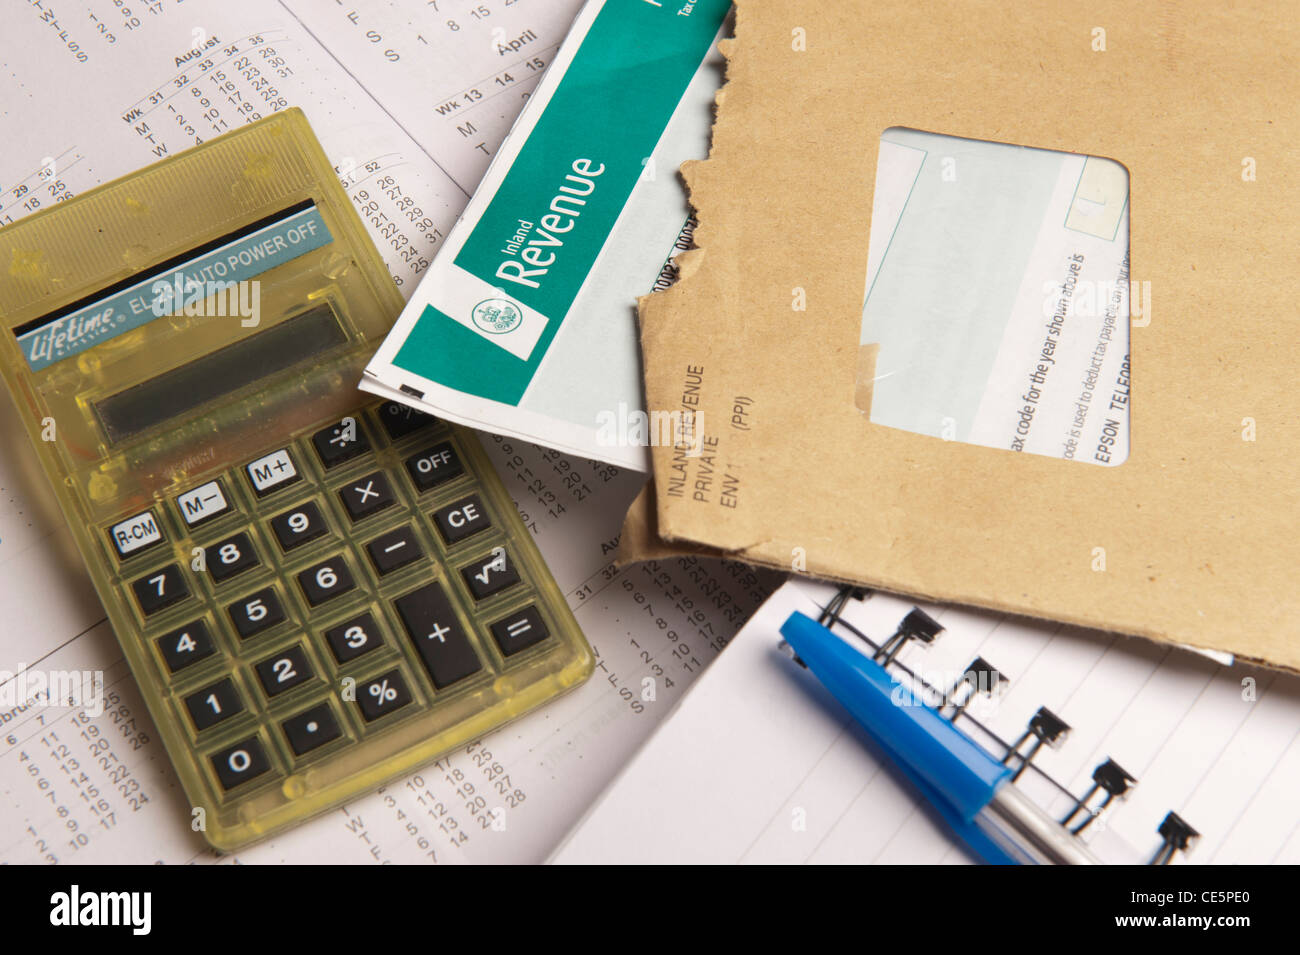 Income Tax Return Forms. Picture by Pete Gawlik. - Stock Image